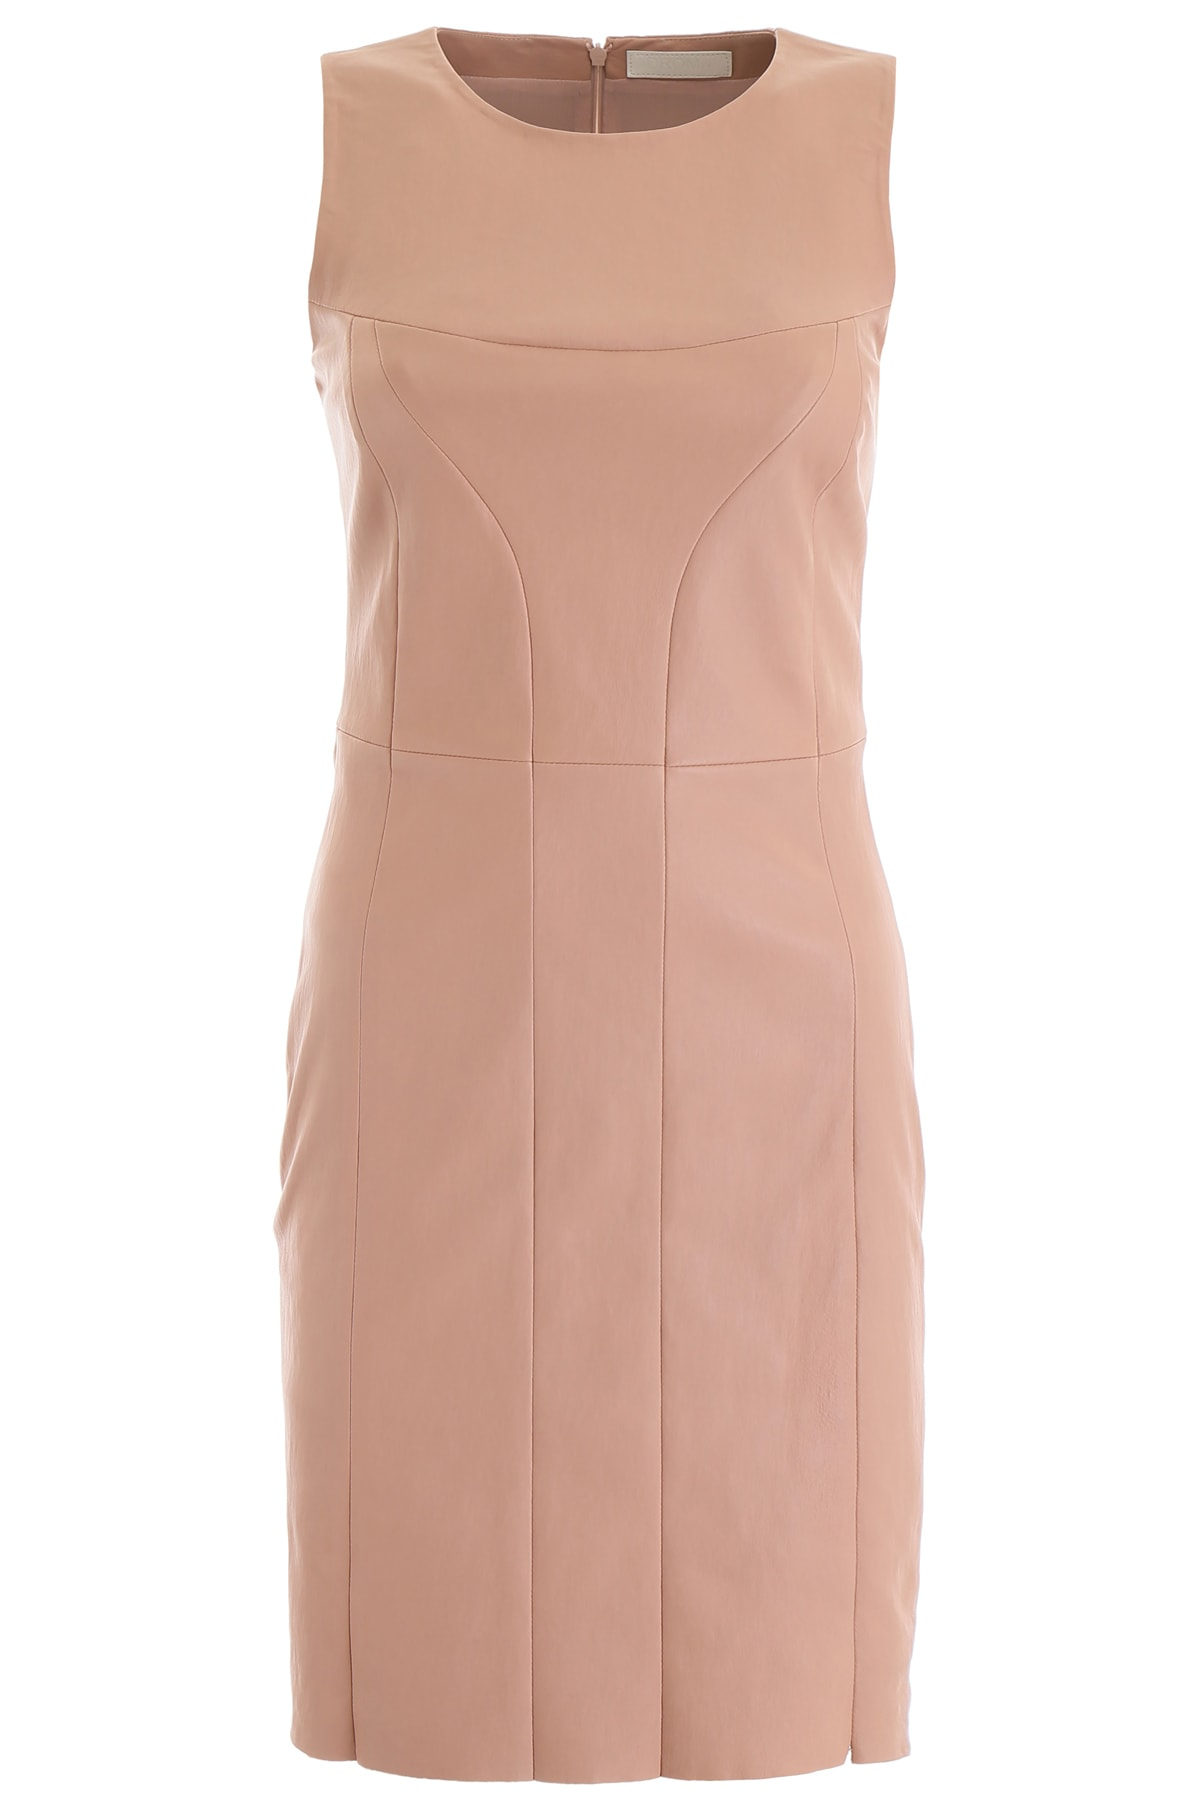 Buy DROMe Nappa Dress online, shop DROMe with free shipping